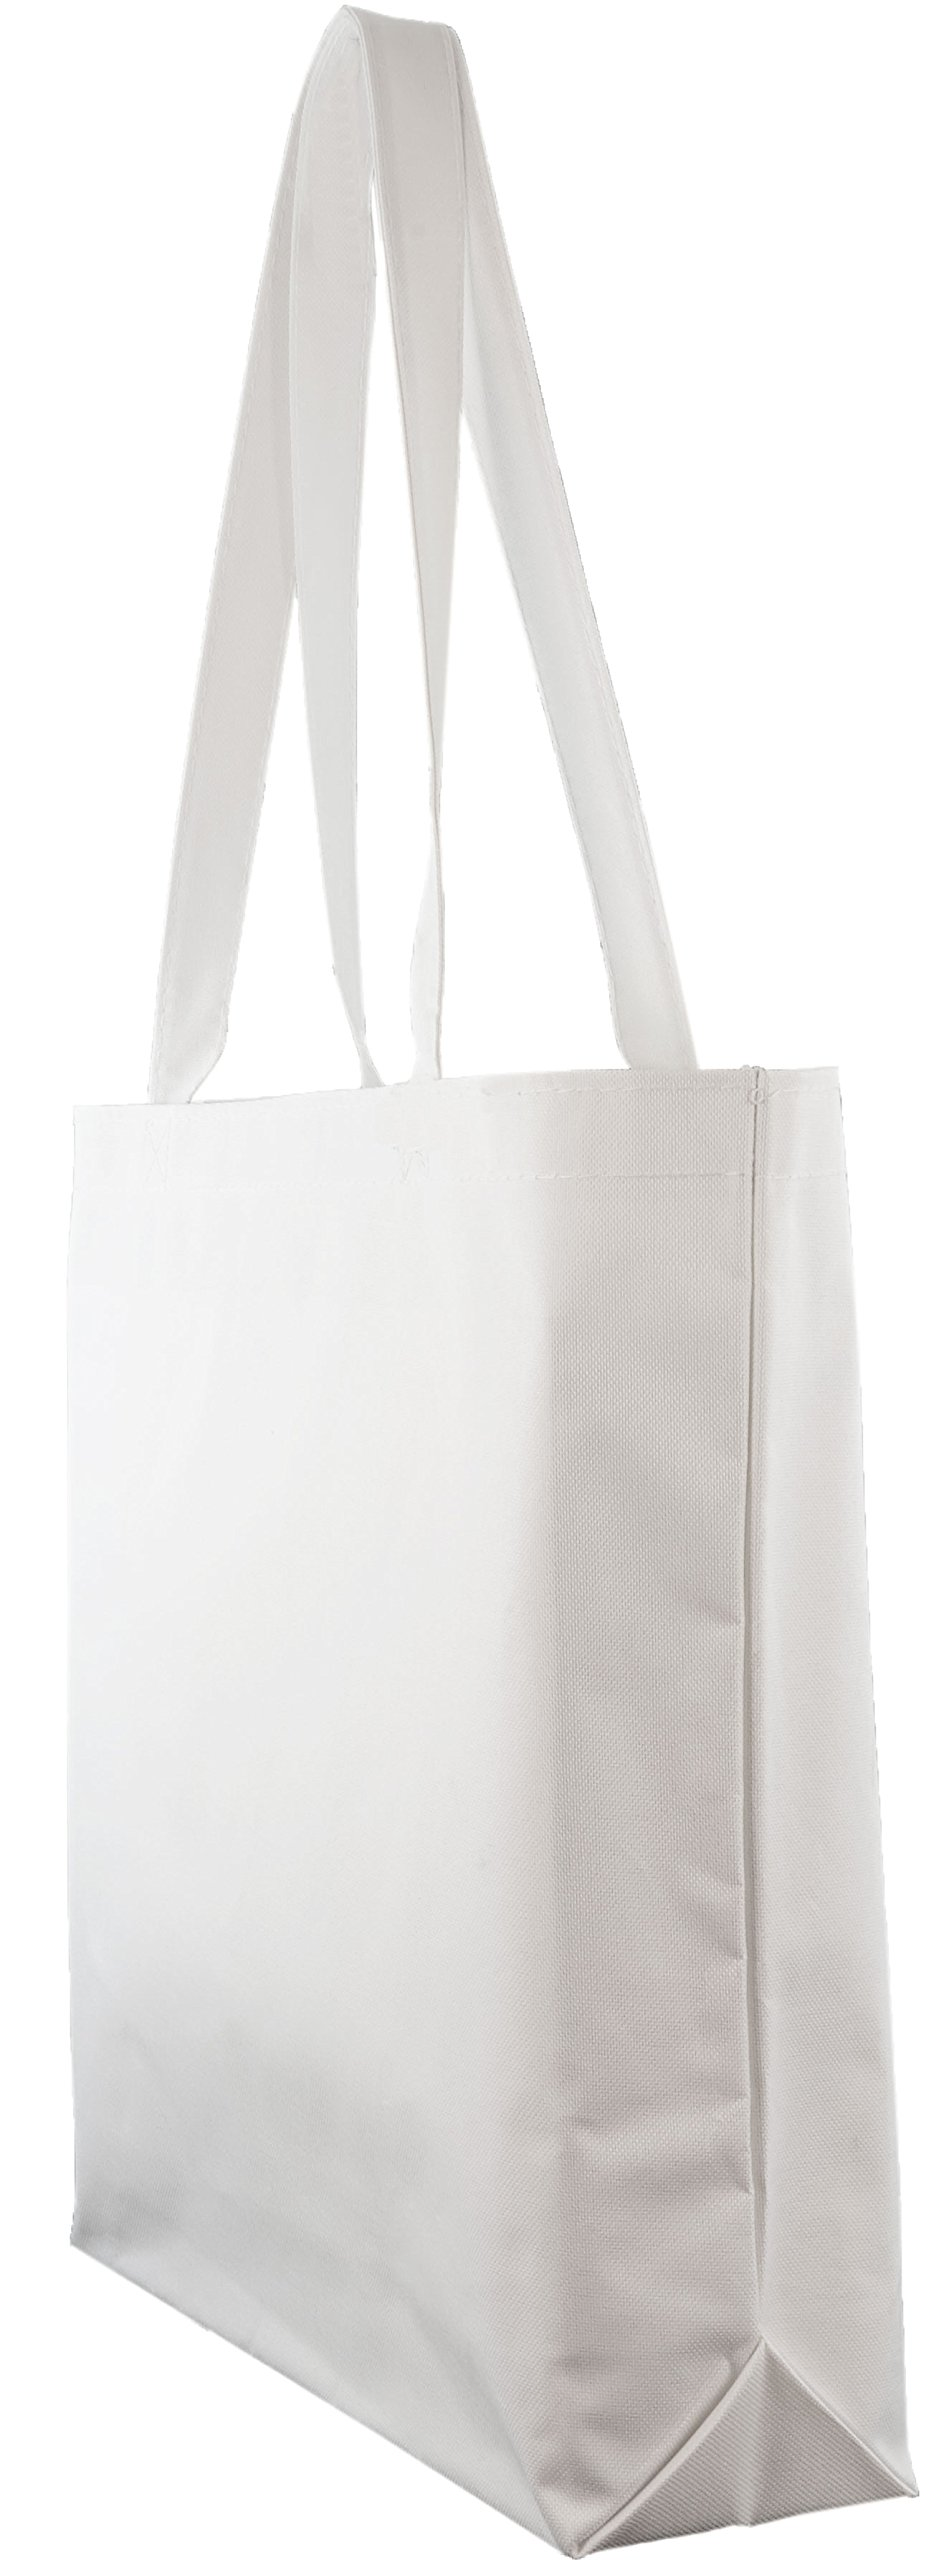 Large Shopping Tote with Shoulder Length Handles (White) by Ensign Peak (Image #2)